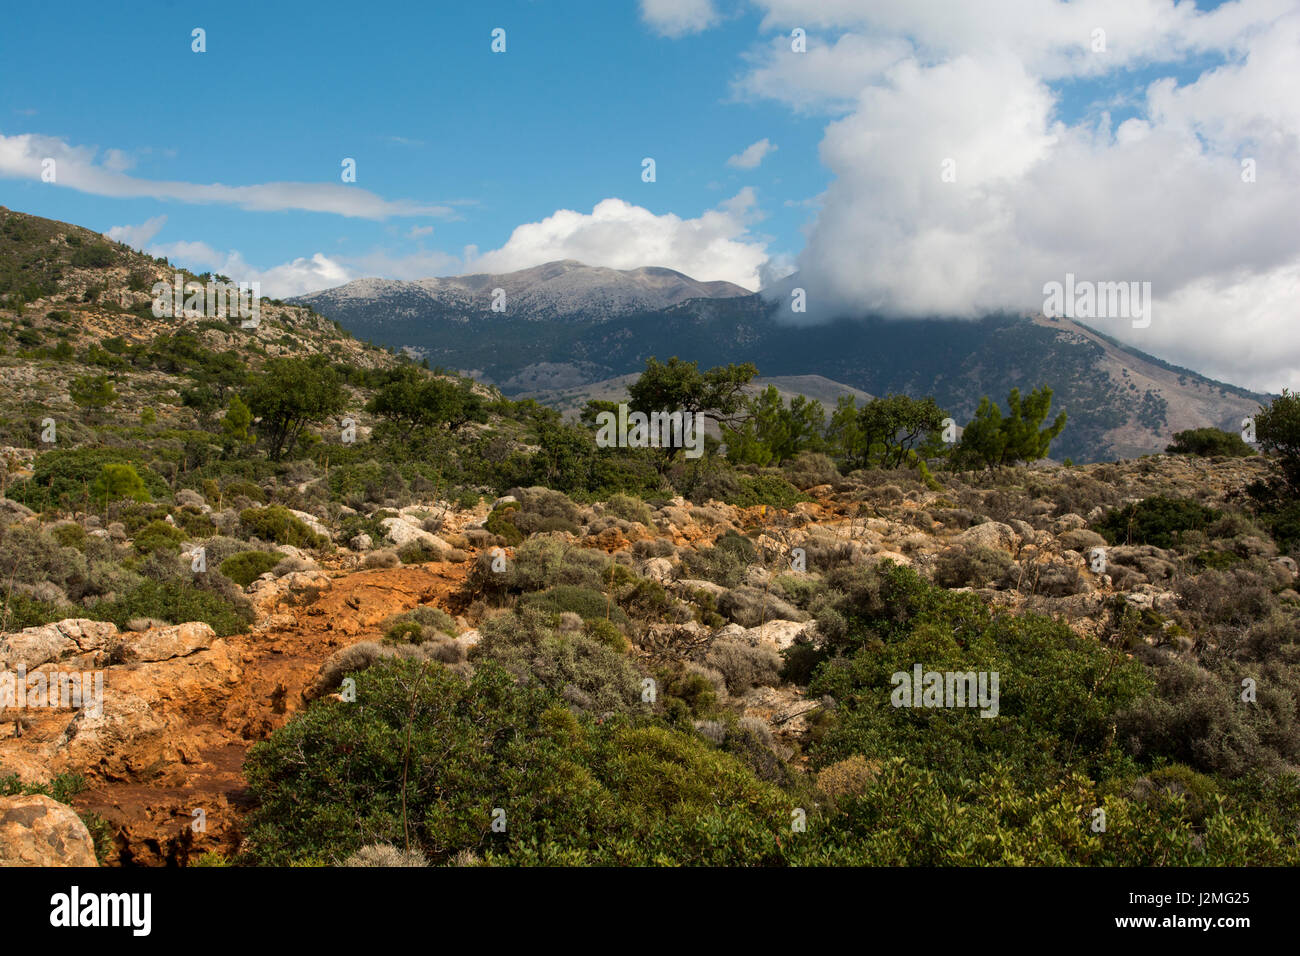 The Aleppo Pine is growing around the Mediterranean Coast as here on the Kandouni plain at the southwest coast of - Stock Image